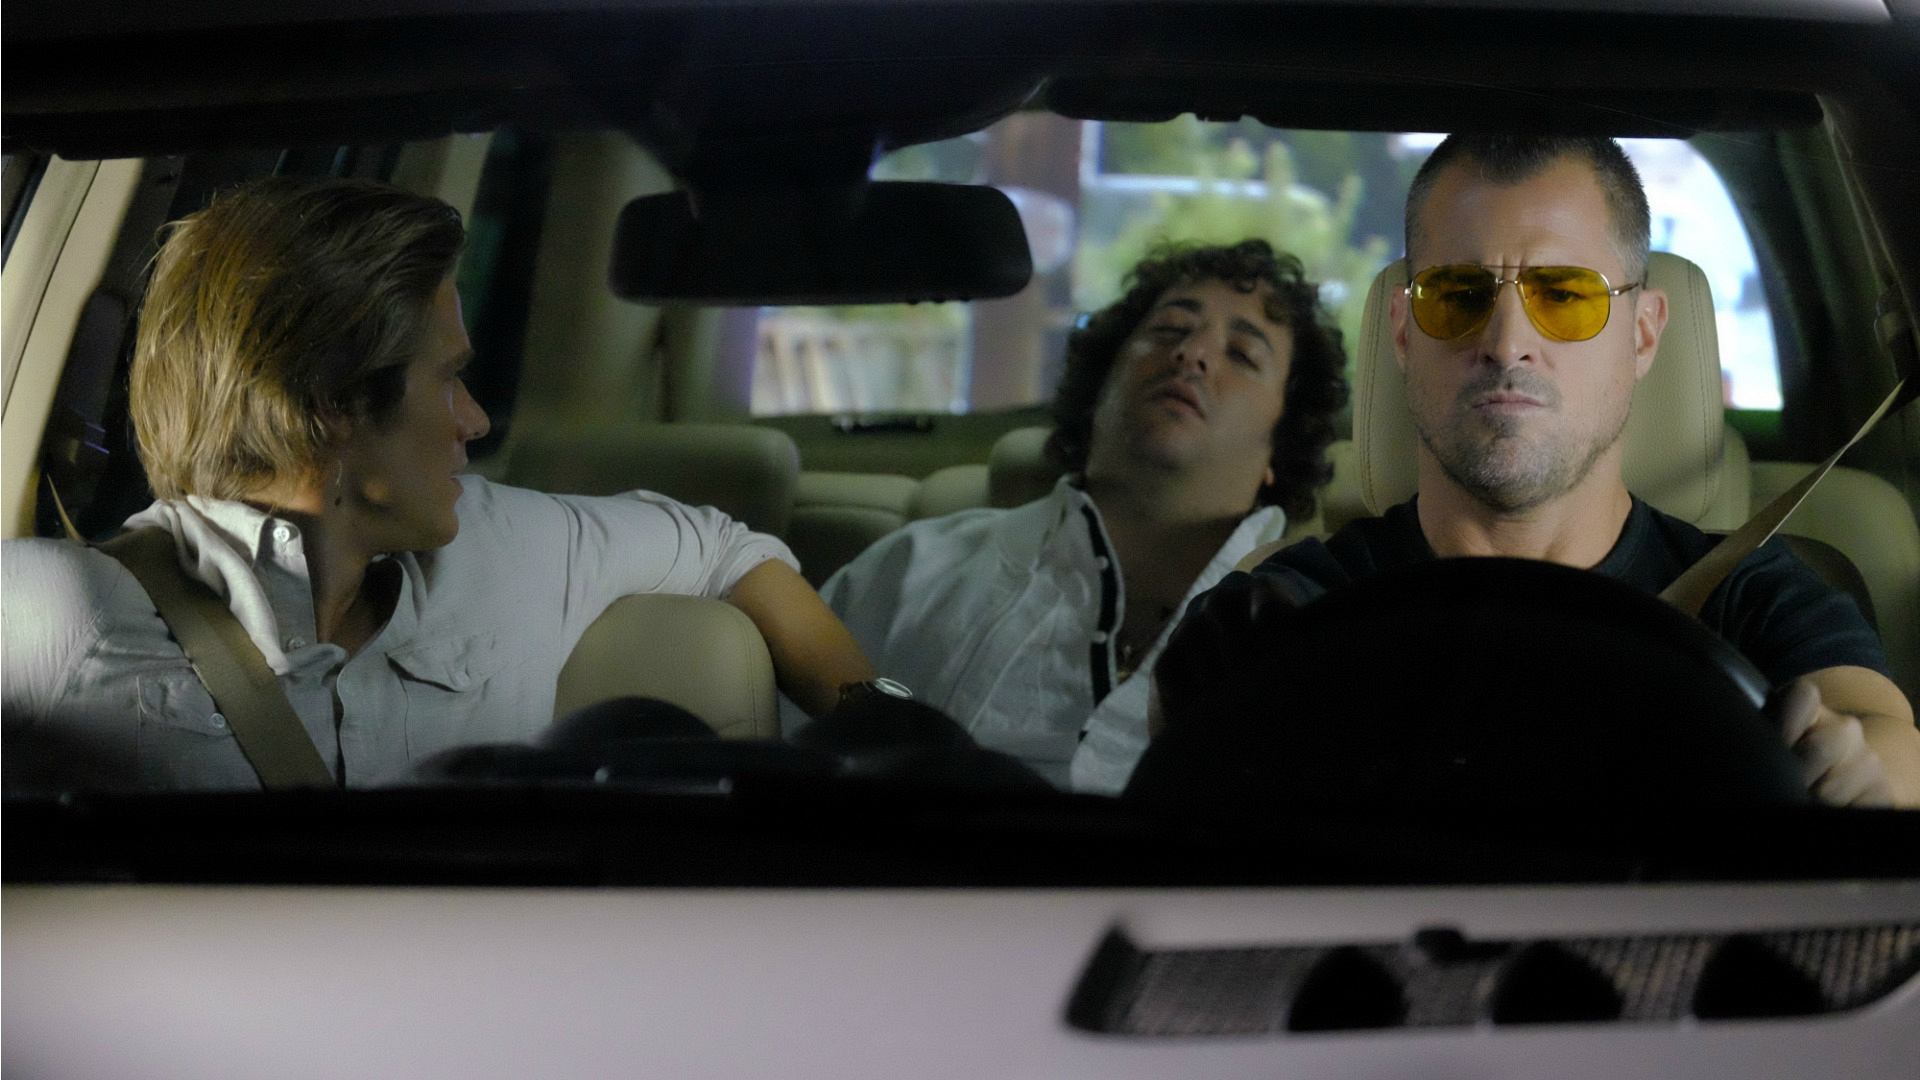 Jack takes the wheel while Mac checks on the man in the backseat.